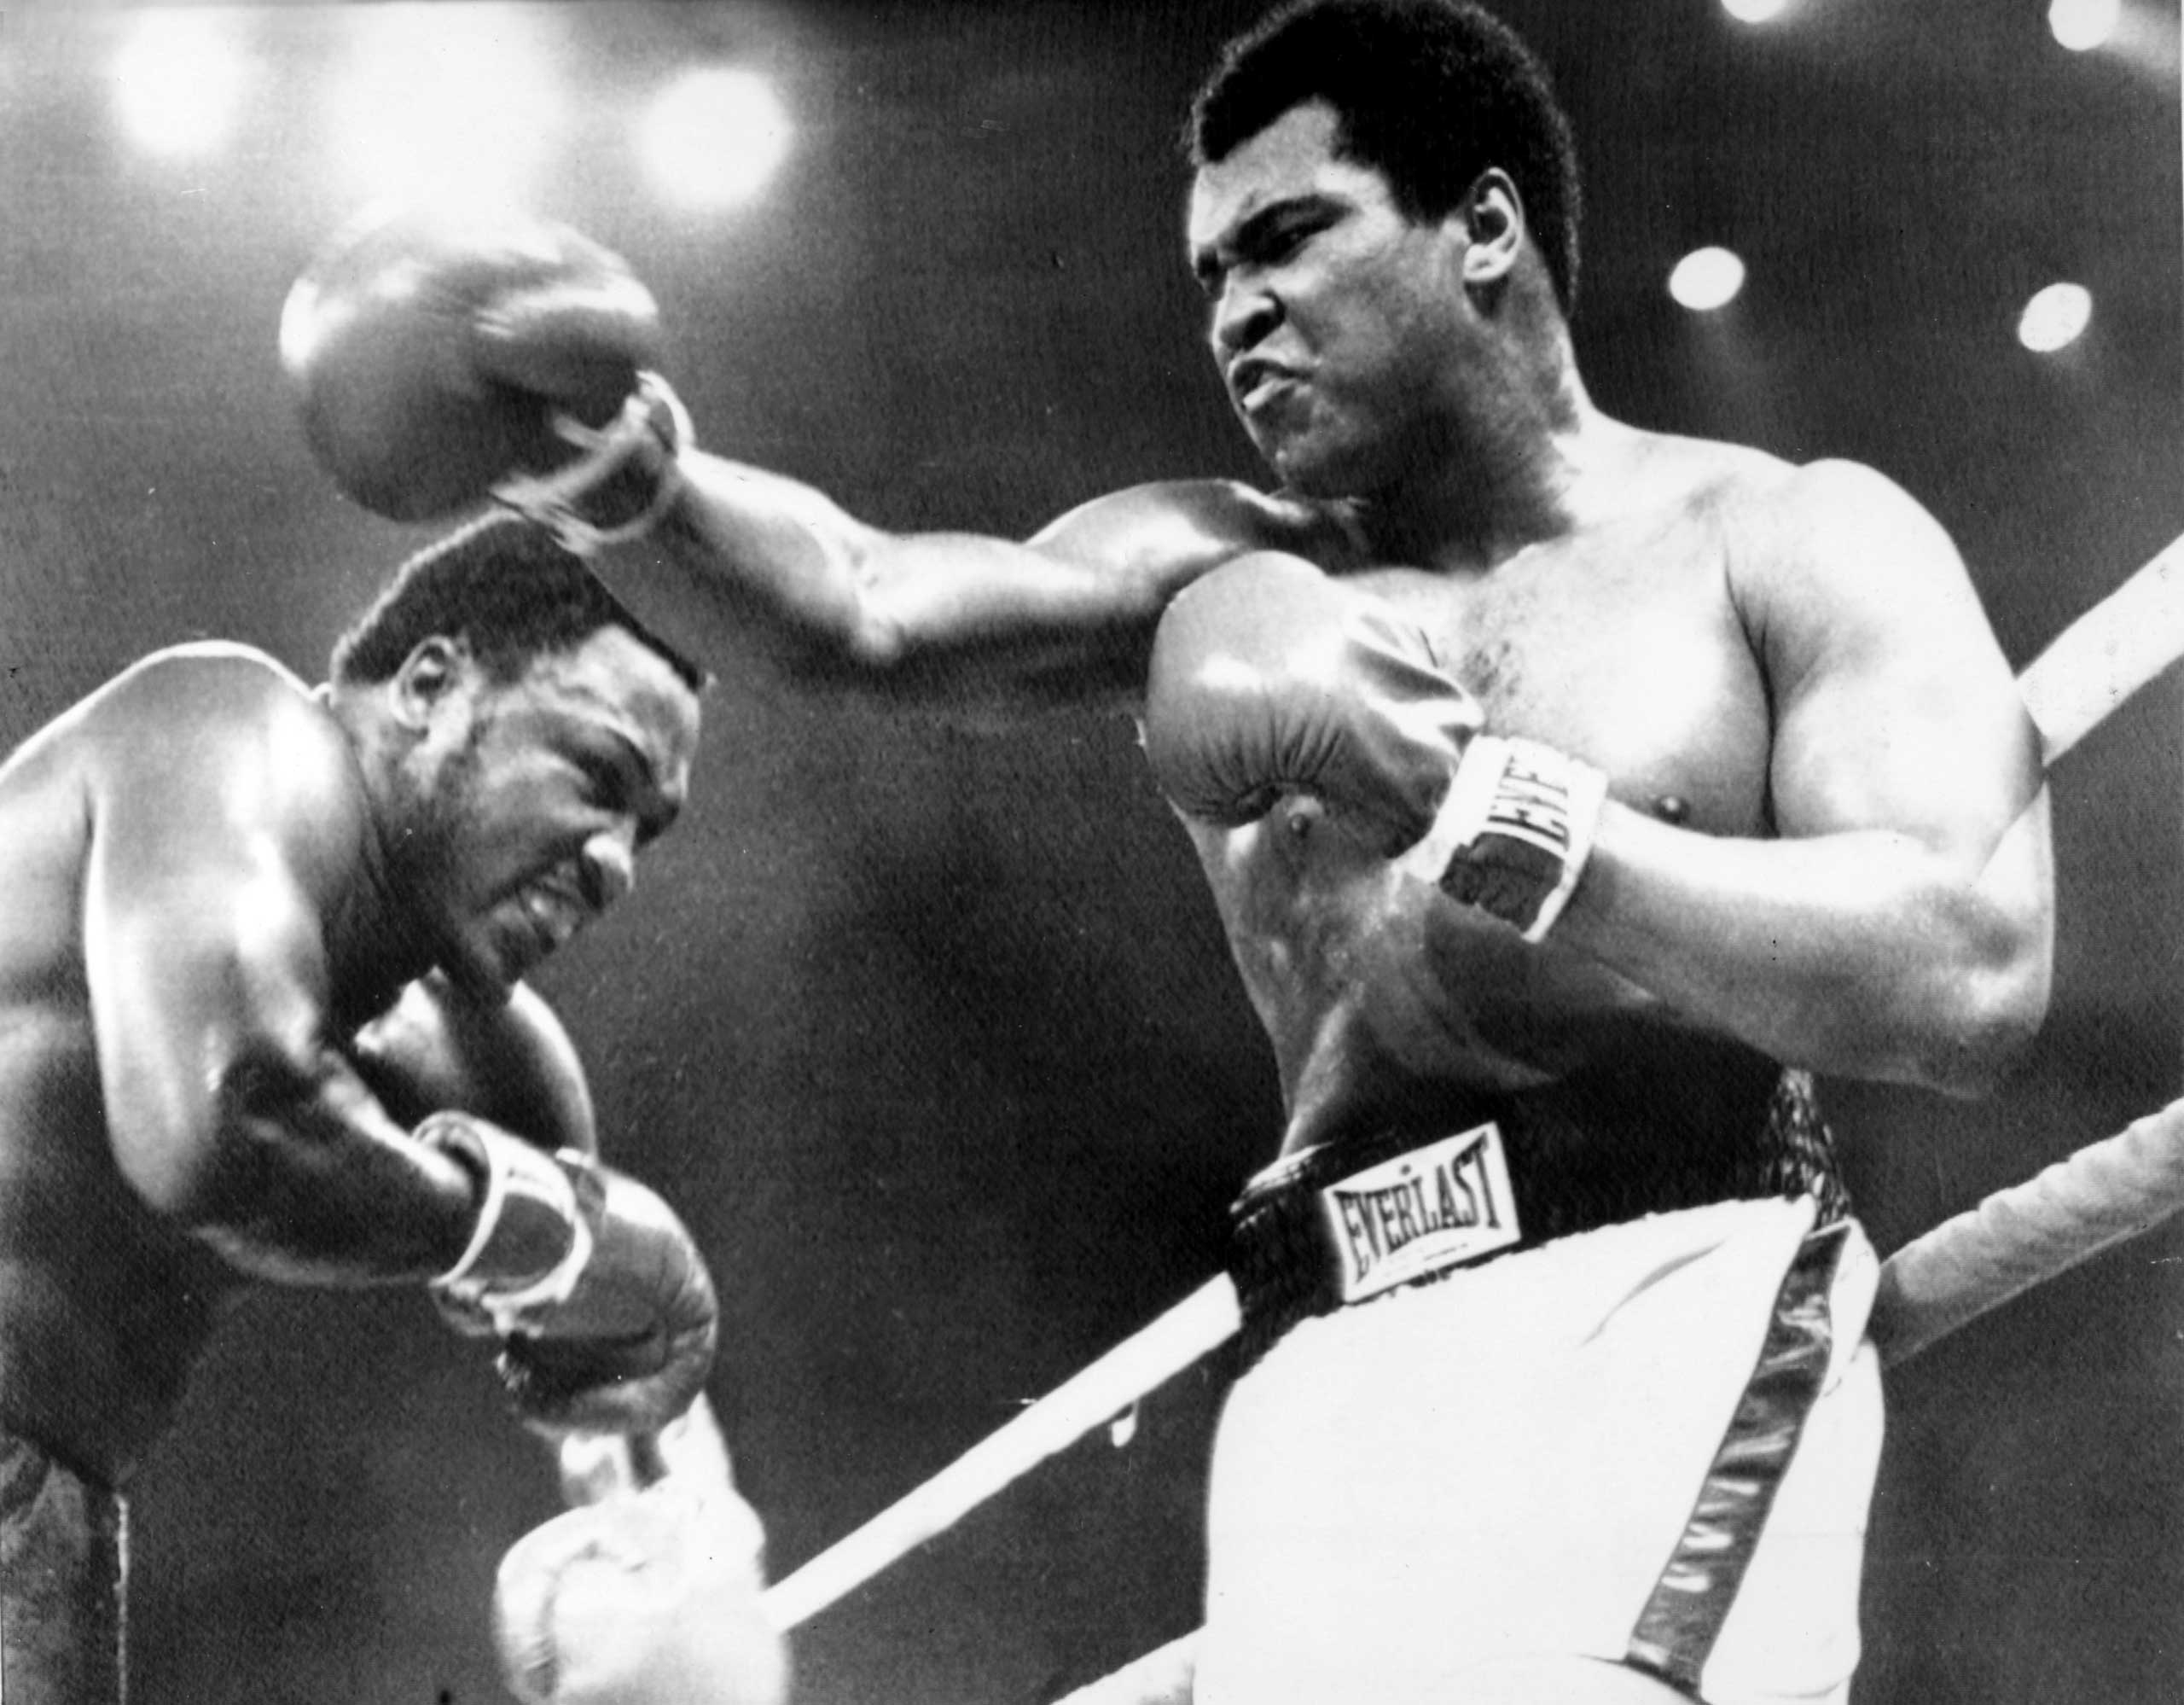 "<b>Muhammad Ali vs. Joe Frazier, Oct. 1, 1975</b> As close to death as he'd ever been. And that's how the winner described it. Little wonder that the ""Thrilla in Manila"" (aka Muhammad Ali vs. Joe Frazier III), tops TIME's list of greatest ever fights. The pair entered the decisive third heavyweight fight at 1-1 and the searing Philippine heat made conditions as close to hell as was possible. From the start there was nothing humane about the way the pair went at each other. You feel that had it not been for the 15-round limit and, ultimately, Frazier's trainer Eddie Futch throwing in the towel at the end of the 14th, they would still be boxing today. ""I want him, boss,"" screamed Frazier. Futch simply replied, ""It's all over. No one will forget what you did here today."" As for Ali, in typically modest fashion, he described his opponent as, ""the greatest fighter of all time, next to me."""